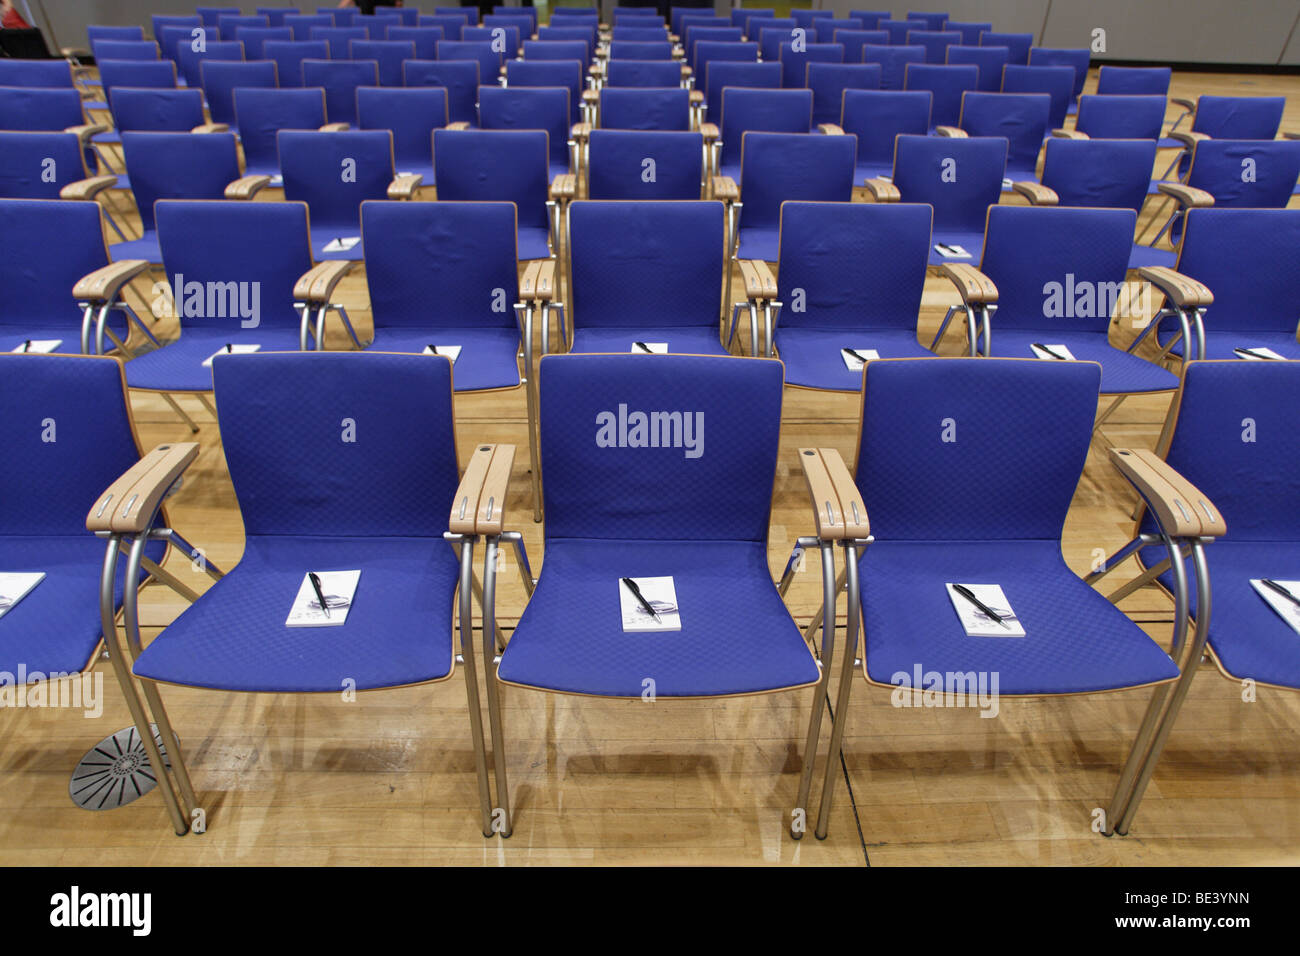 63th International Motor Show ( IAA ): Empty seat rows in a conference room - Stock Image